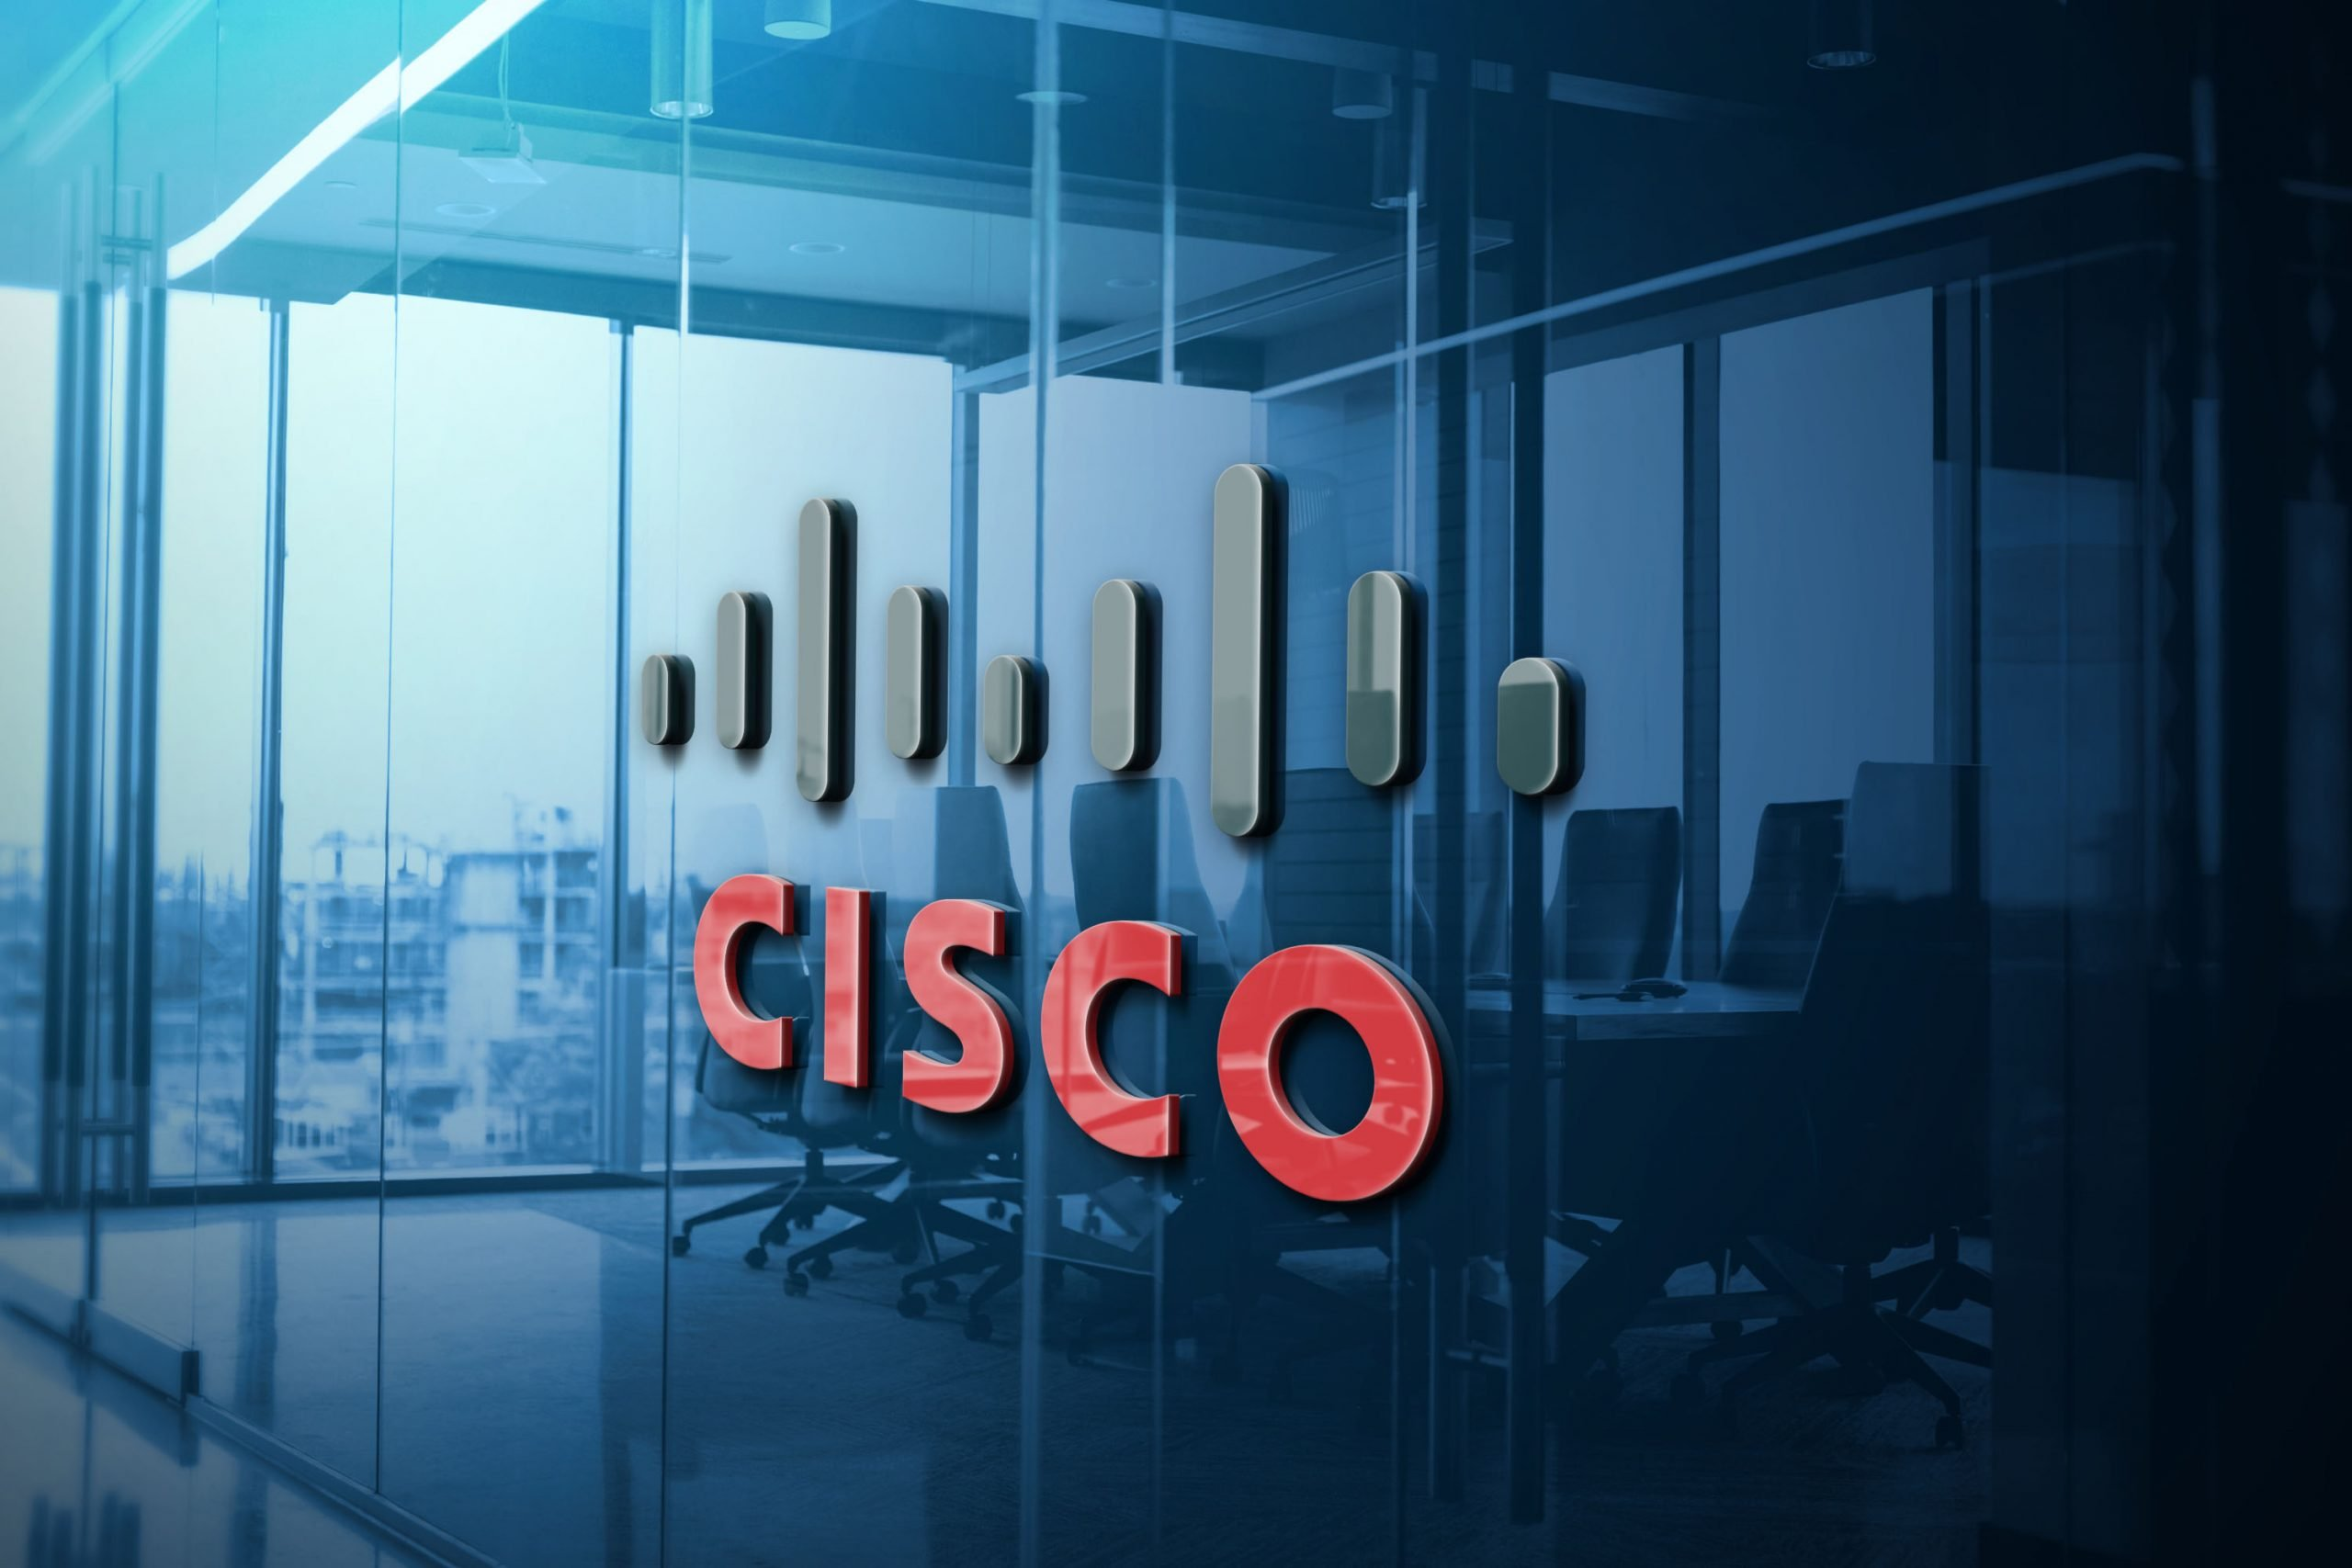 Cisco Blue Glass Logo Mockup